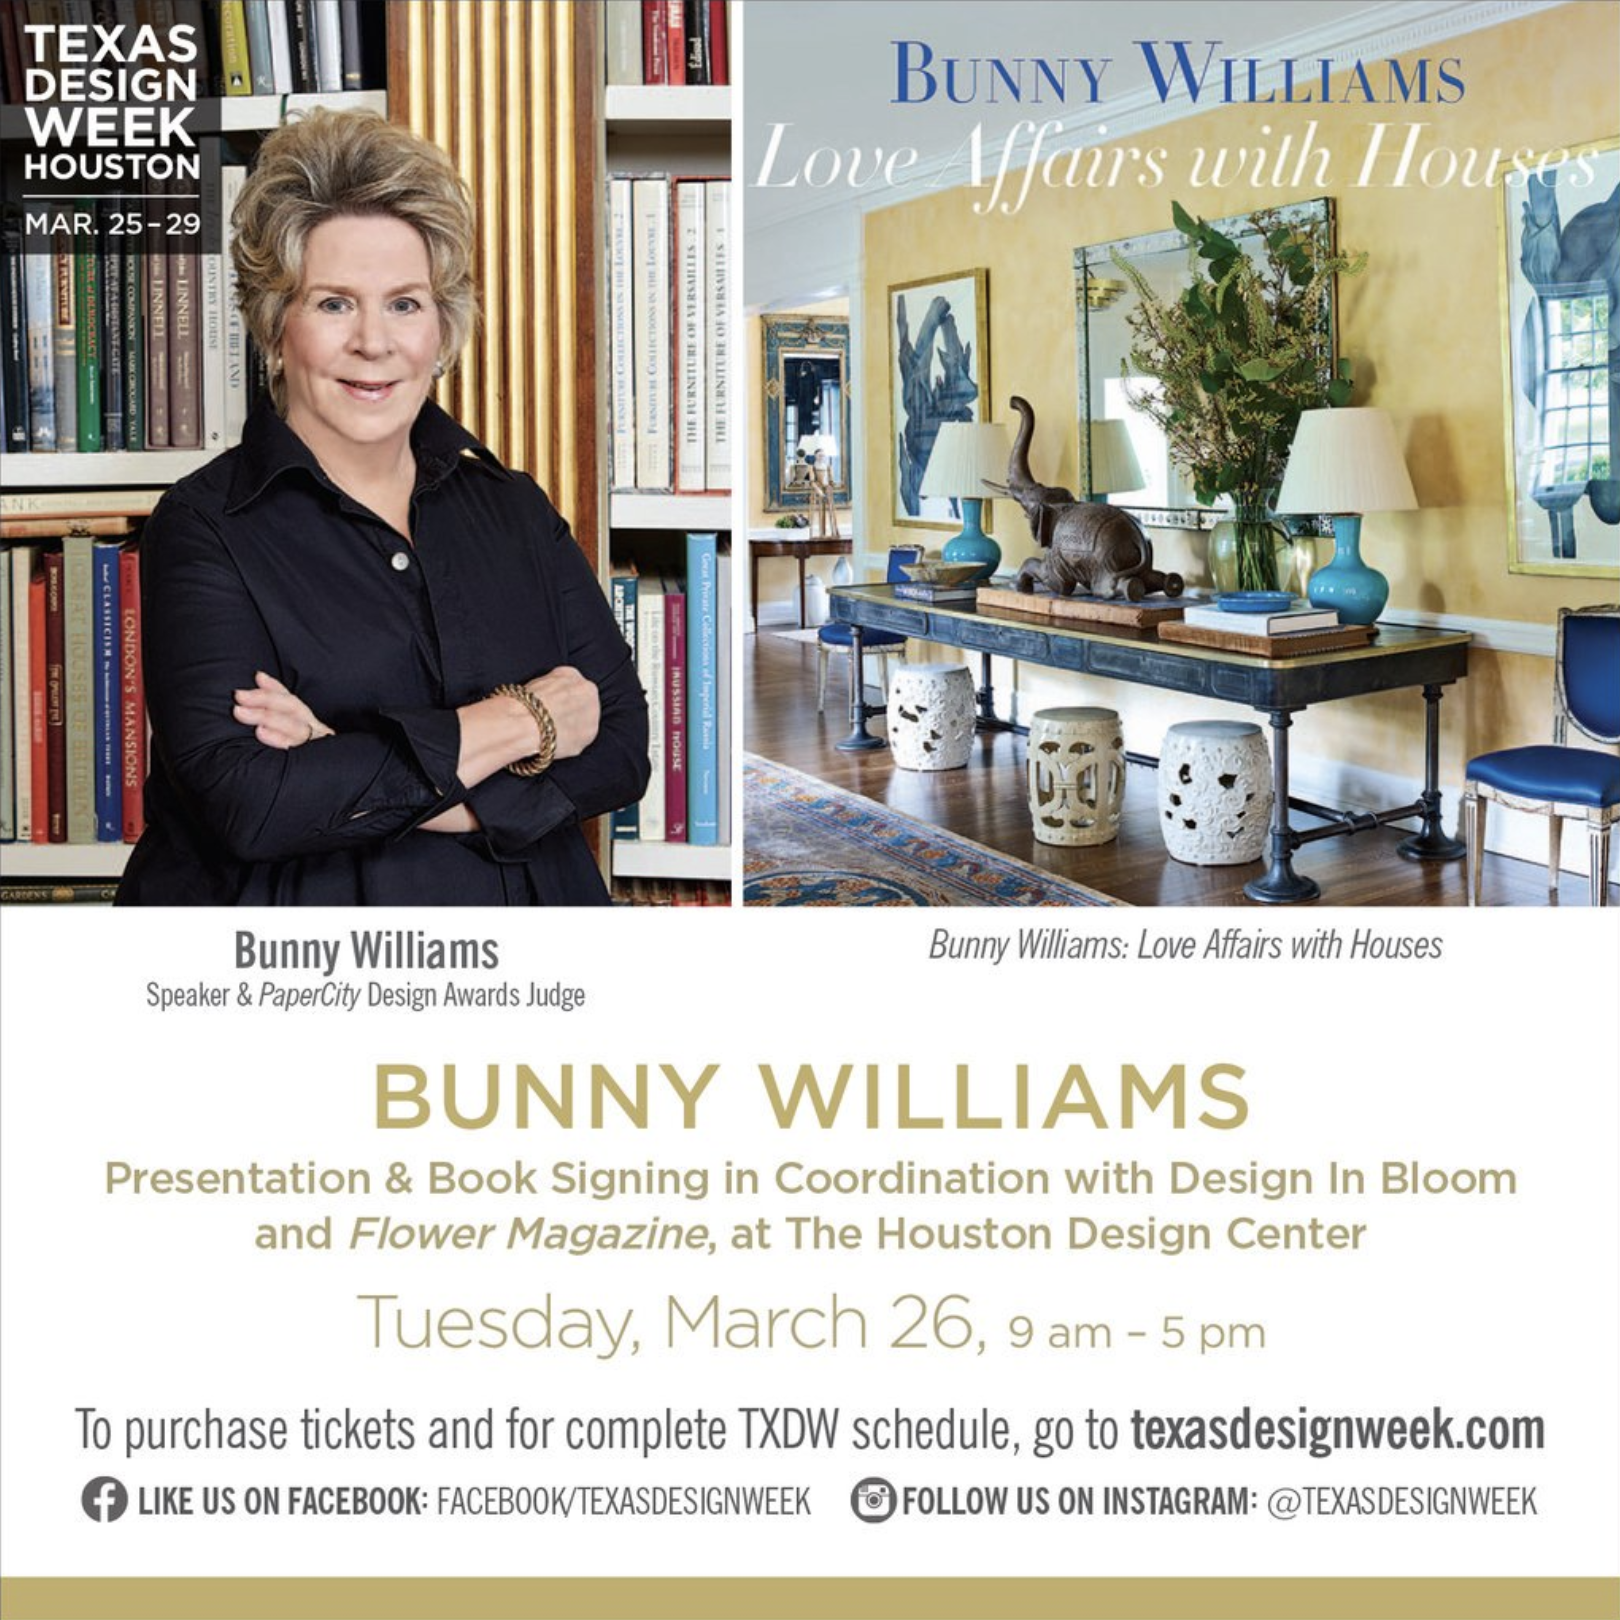 Texas Design Week - Houston